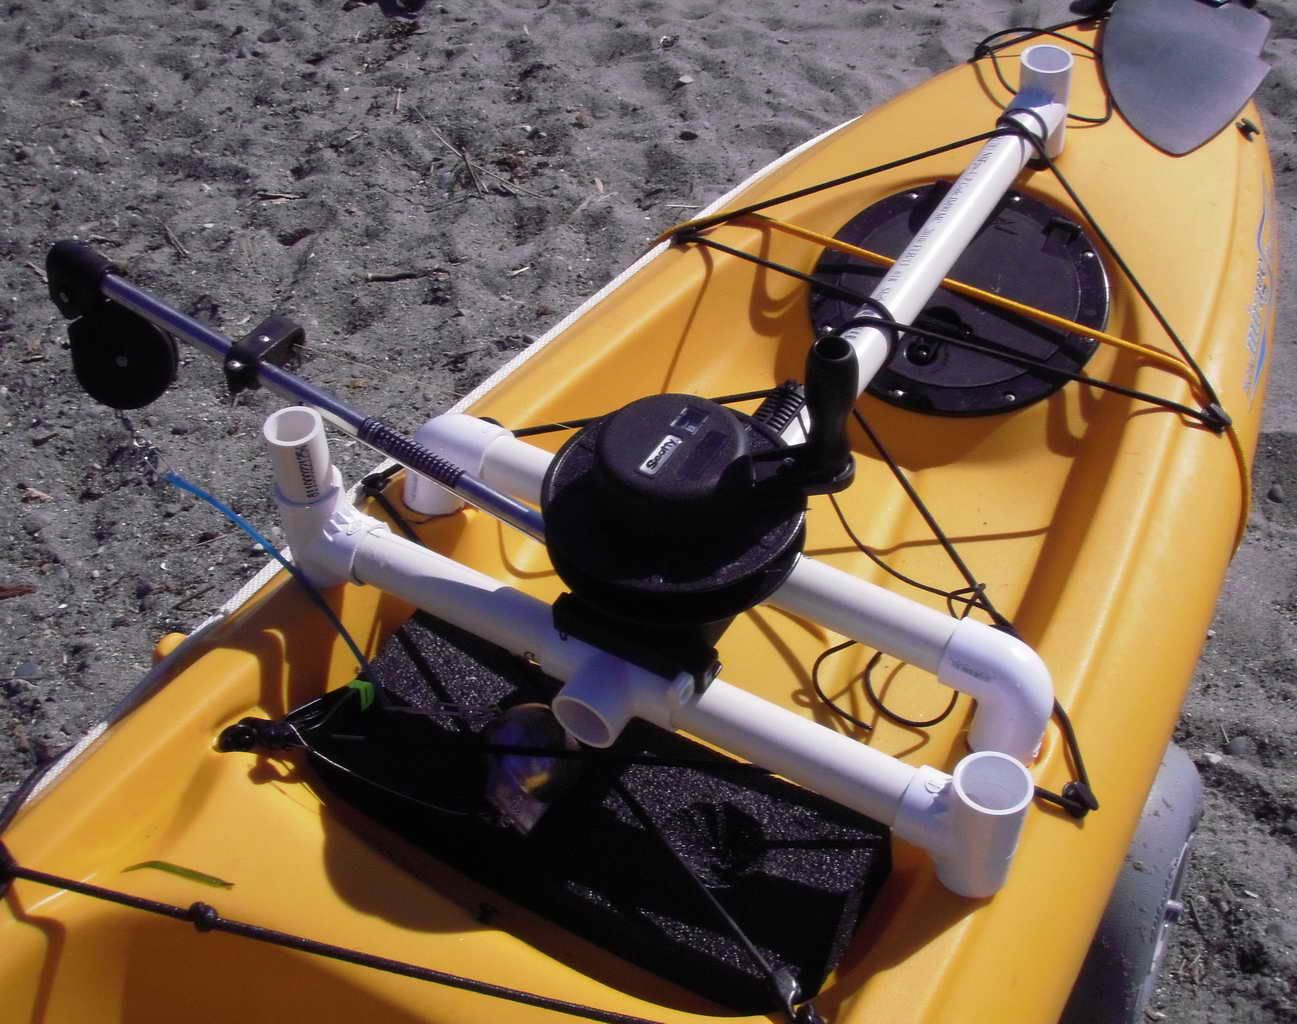 Diy down rigger for Kayak Fishing Kayaking Pinterest